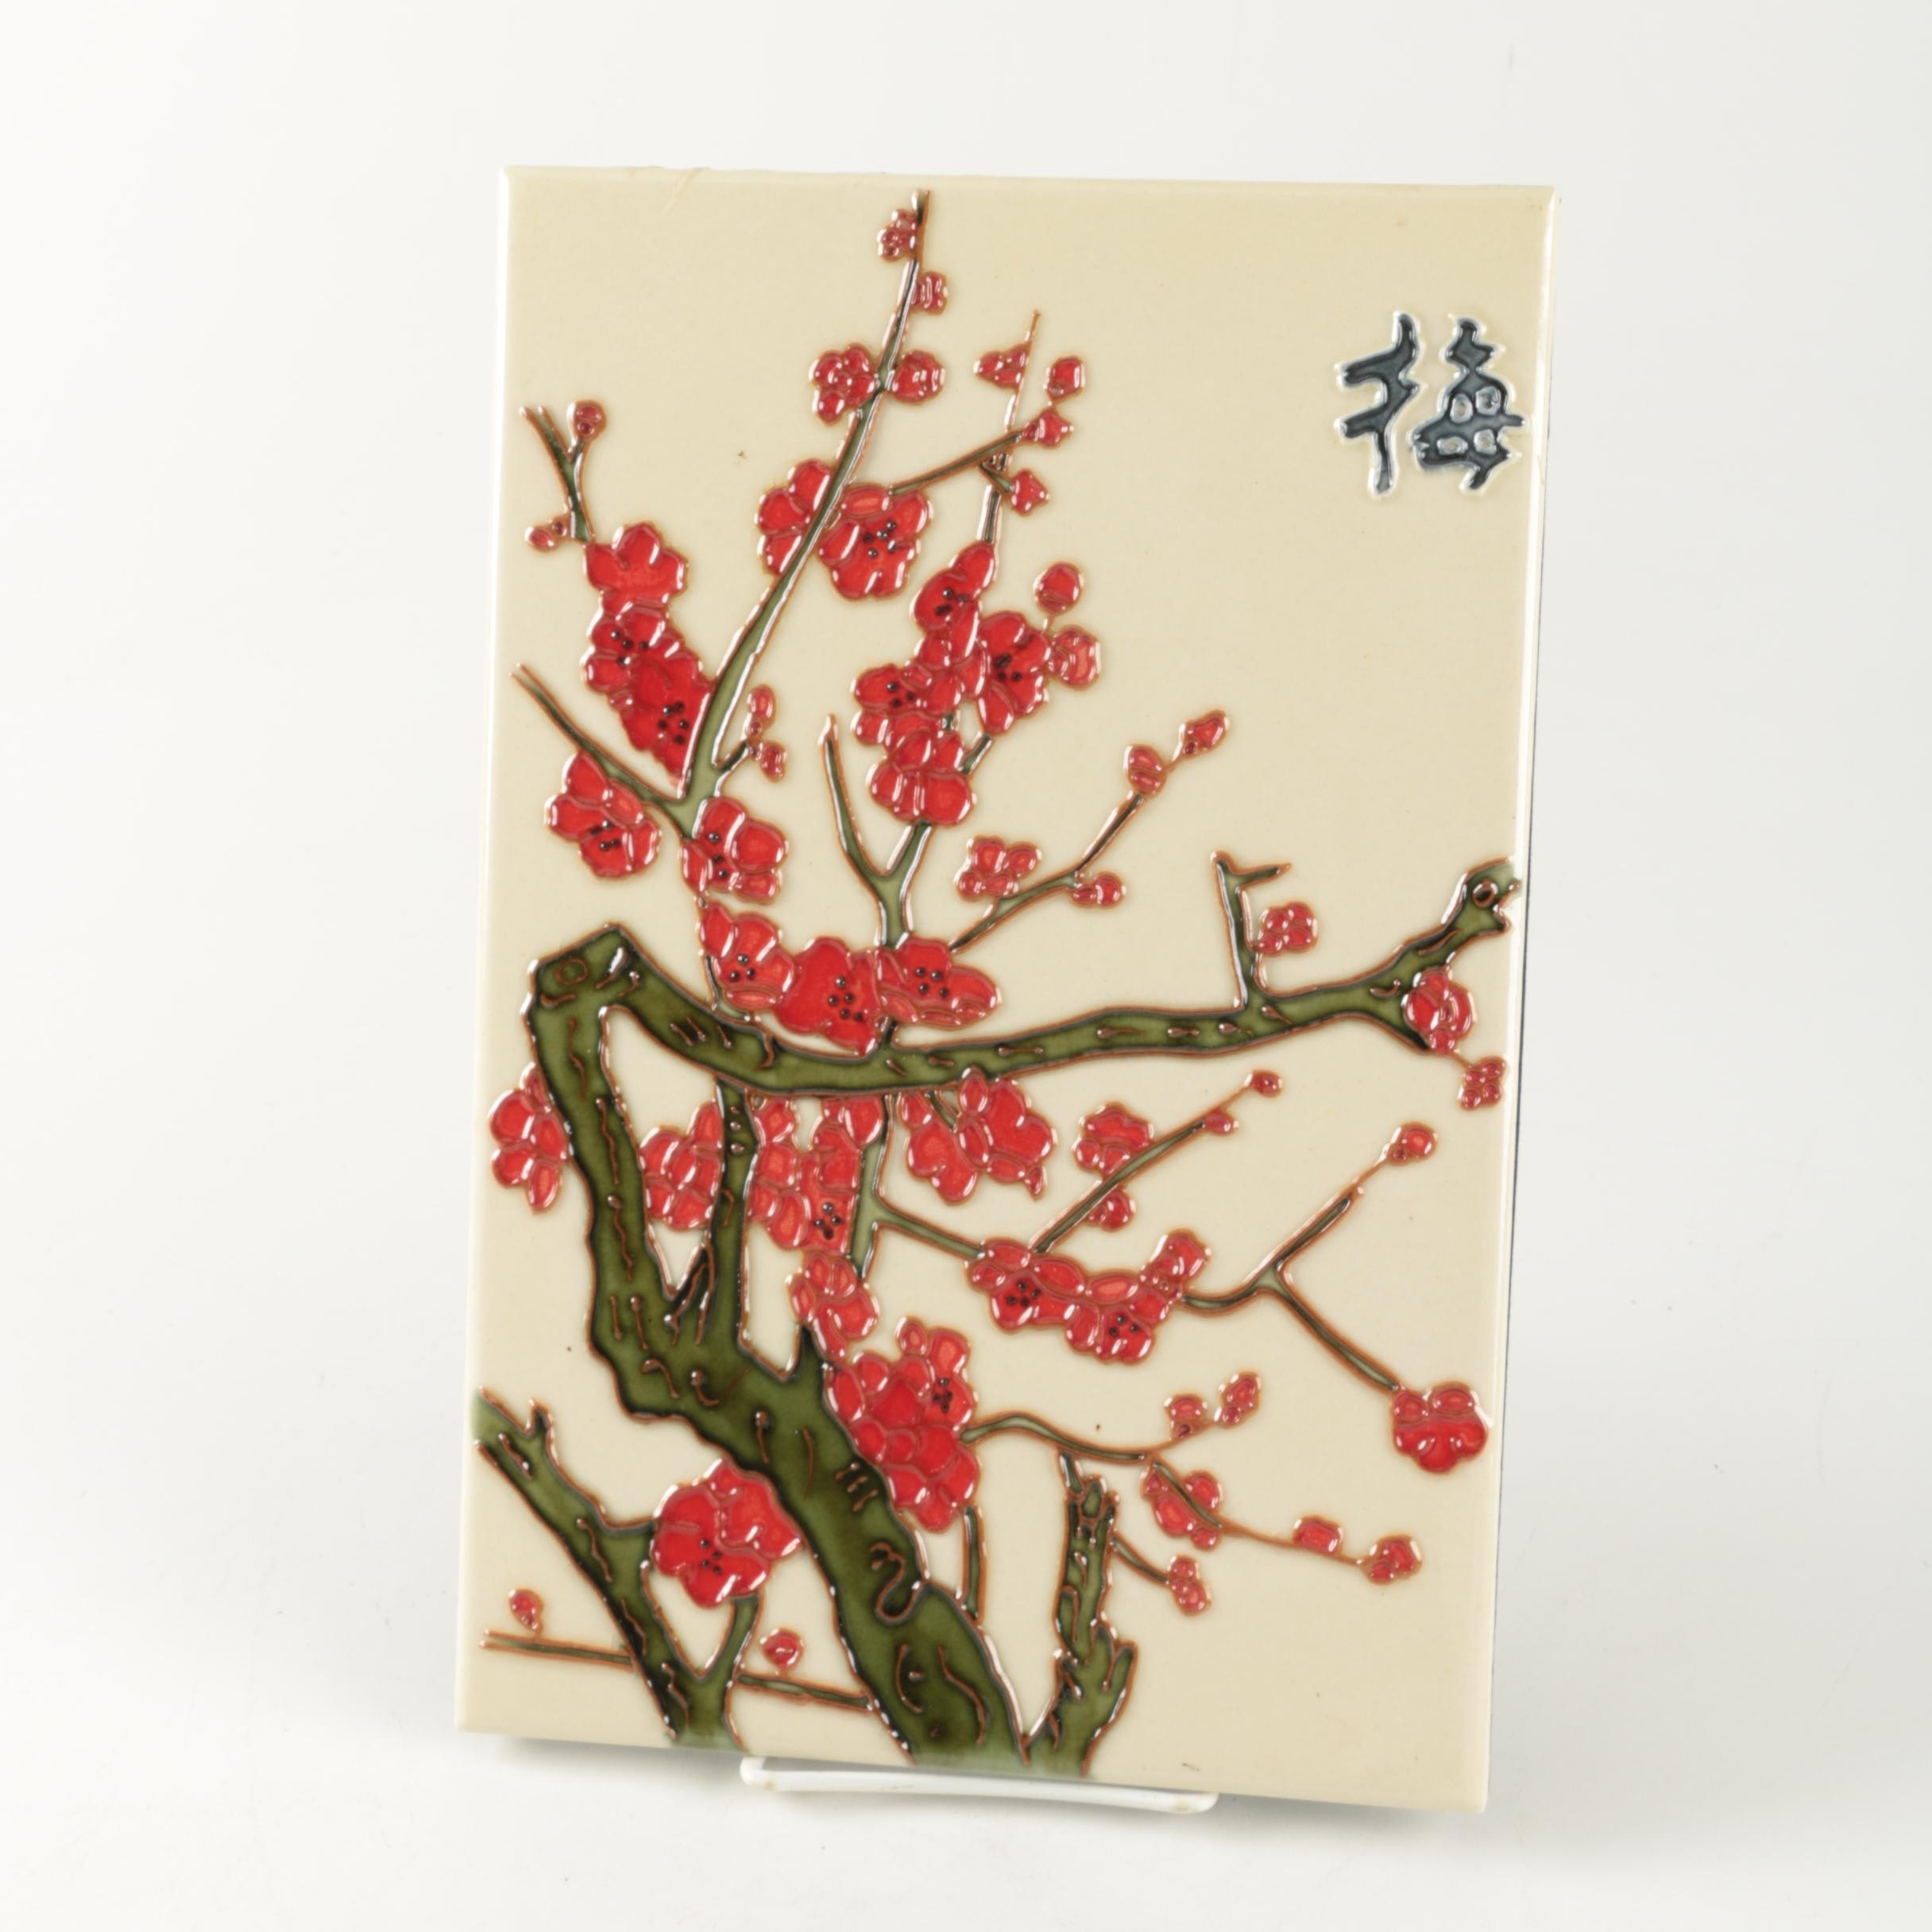 East Asian Hand Decorated Tile with Cherry Blossoms